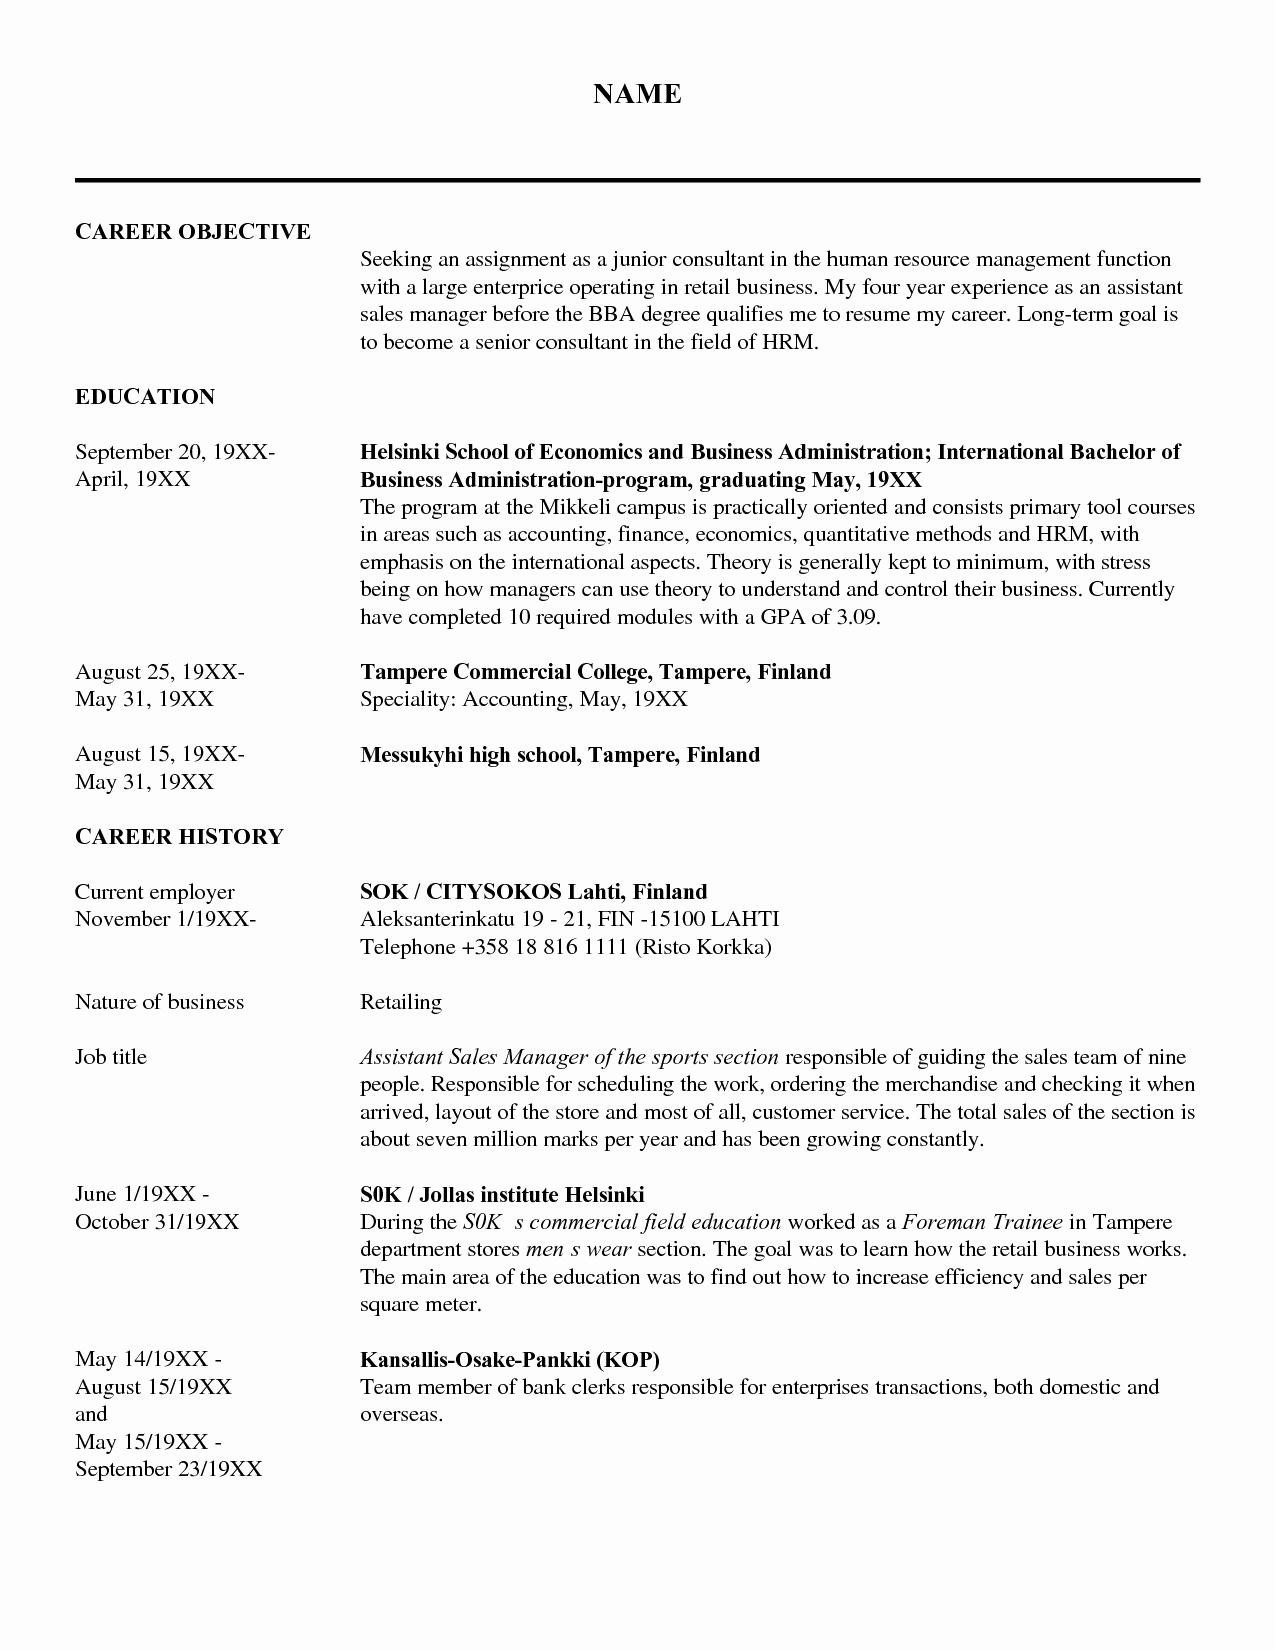 Human Resource Resume Template - Fresh Human Resources Resume Examples